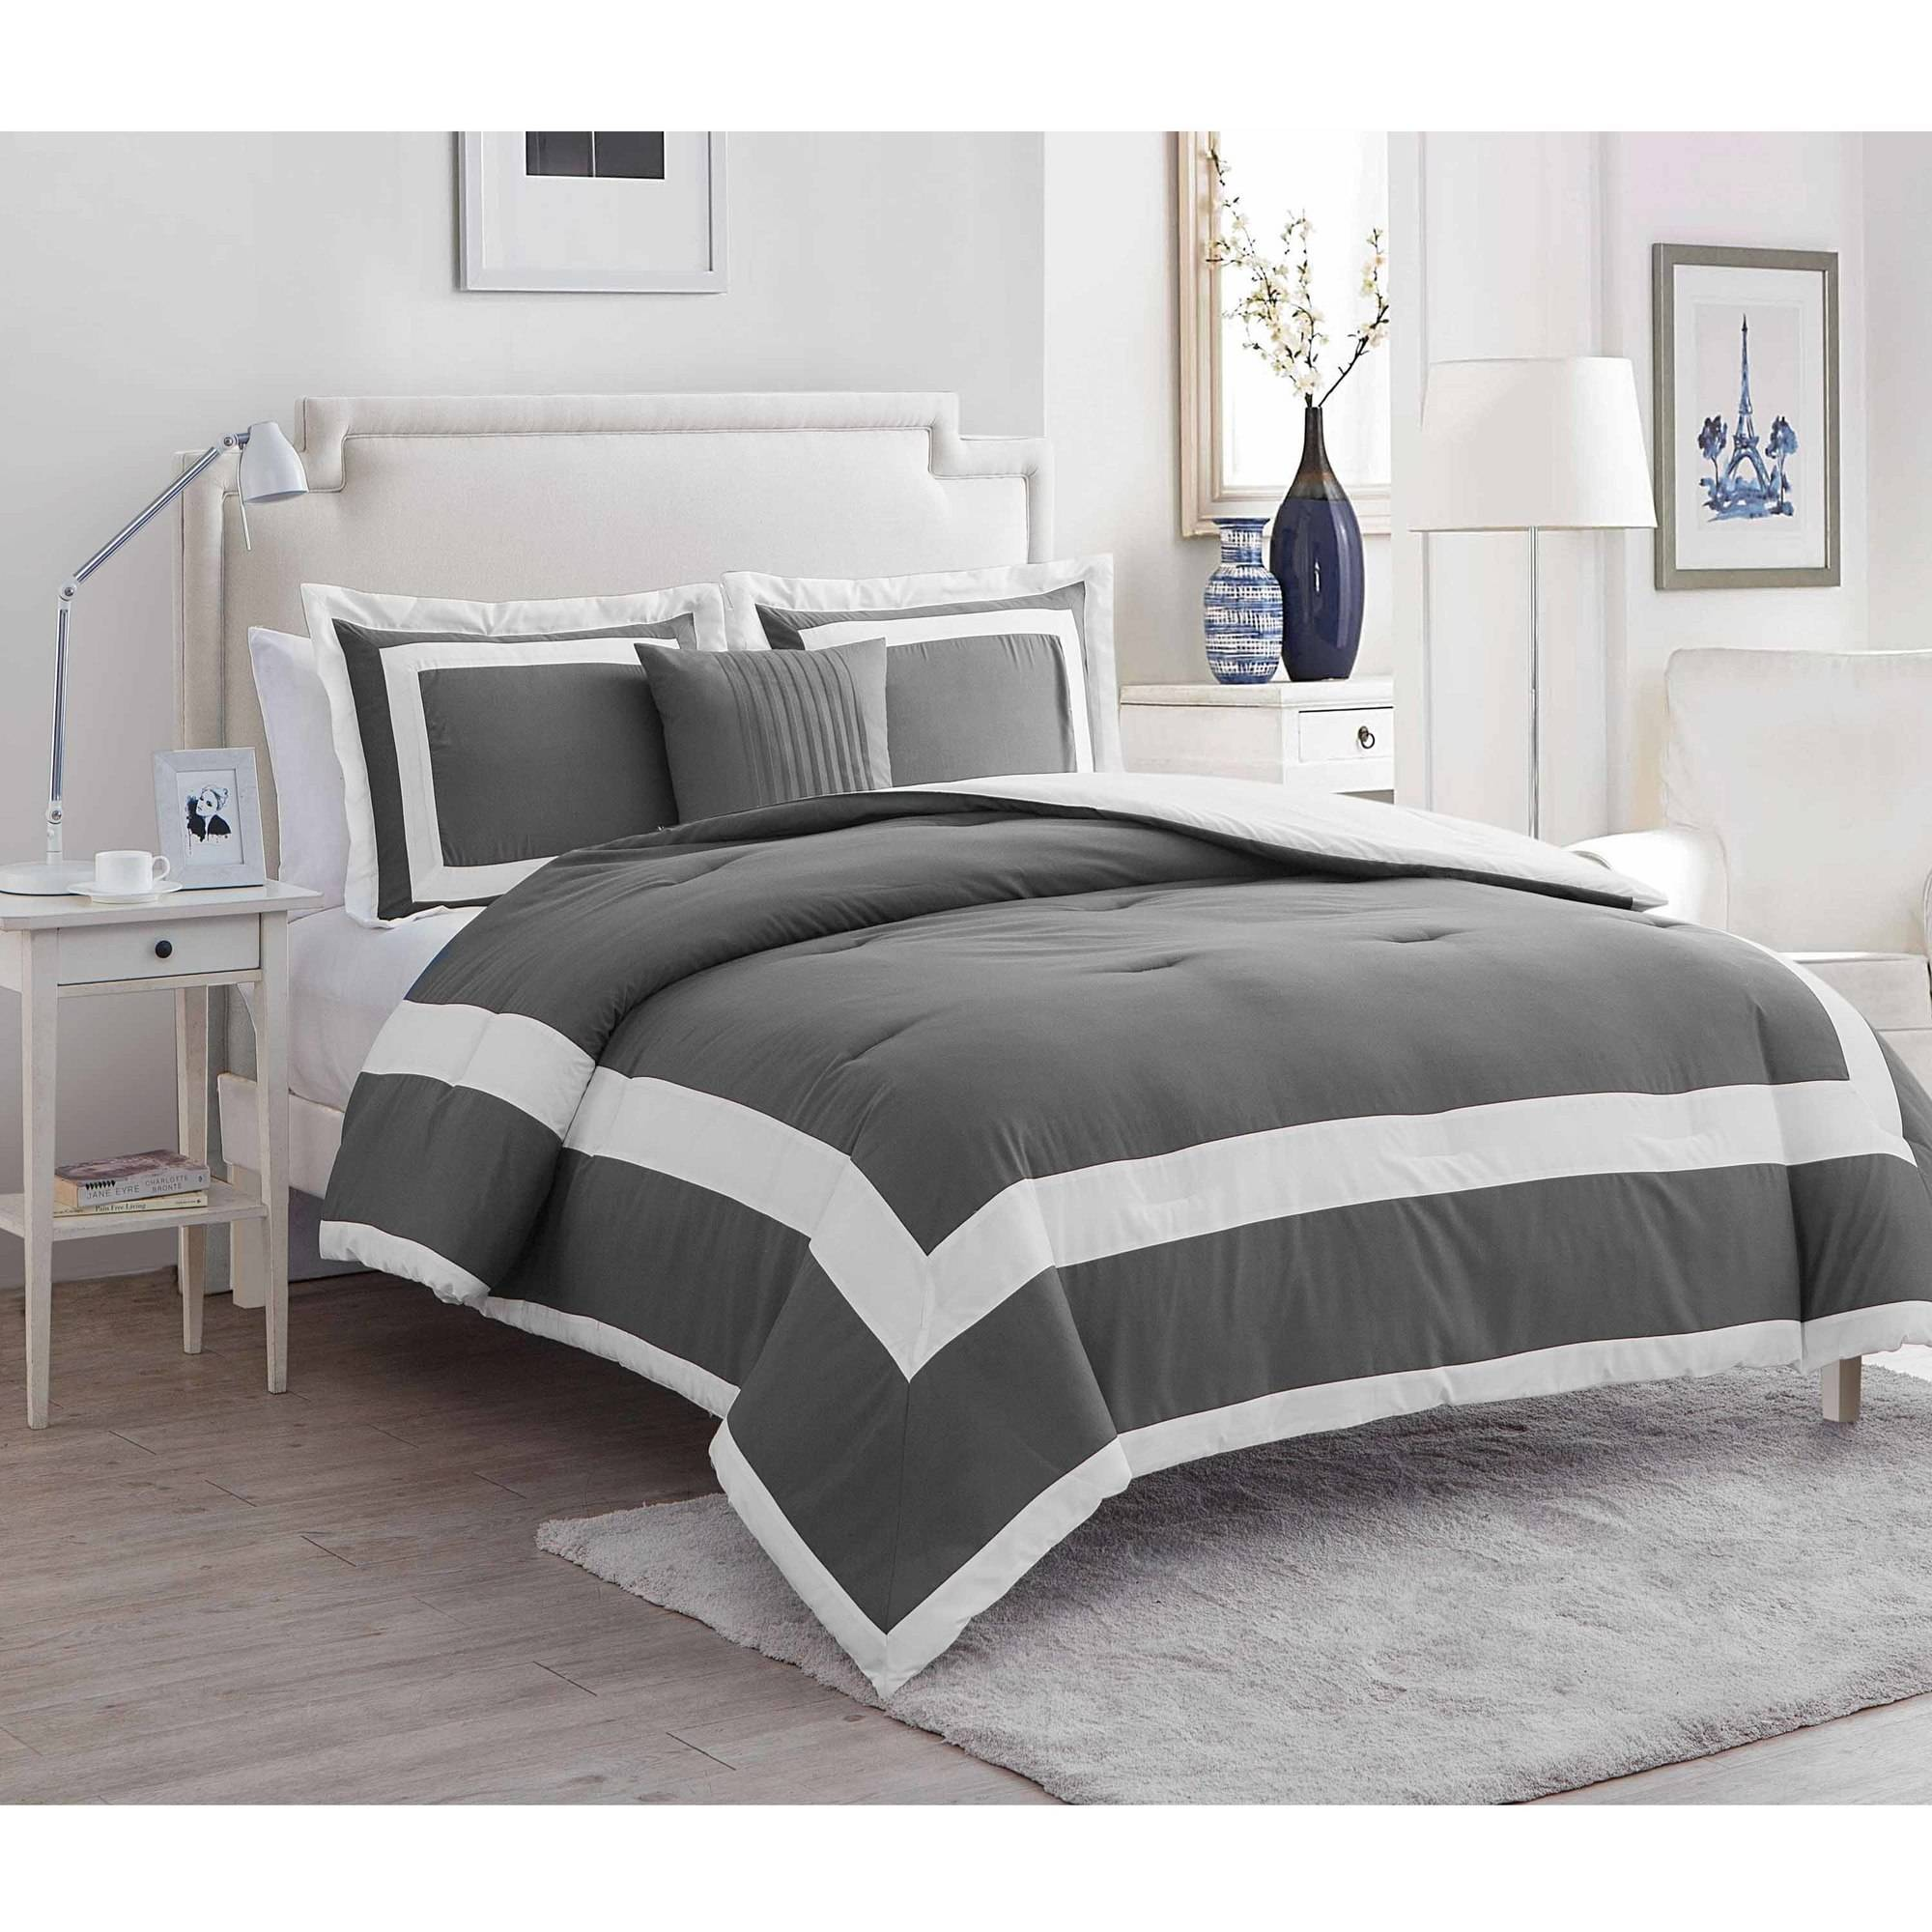 VCNY Home Avianna Hotel 4-Piece Bedding Comforter Set